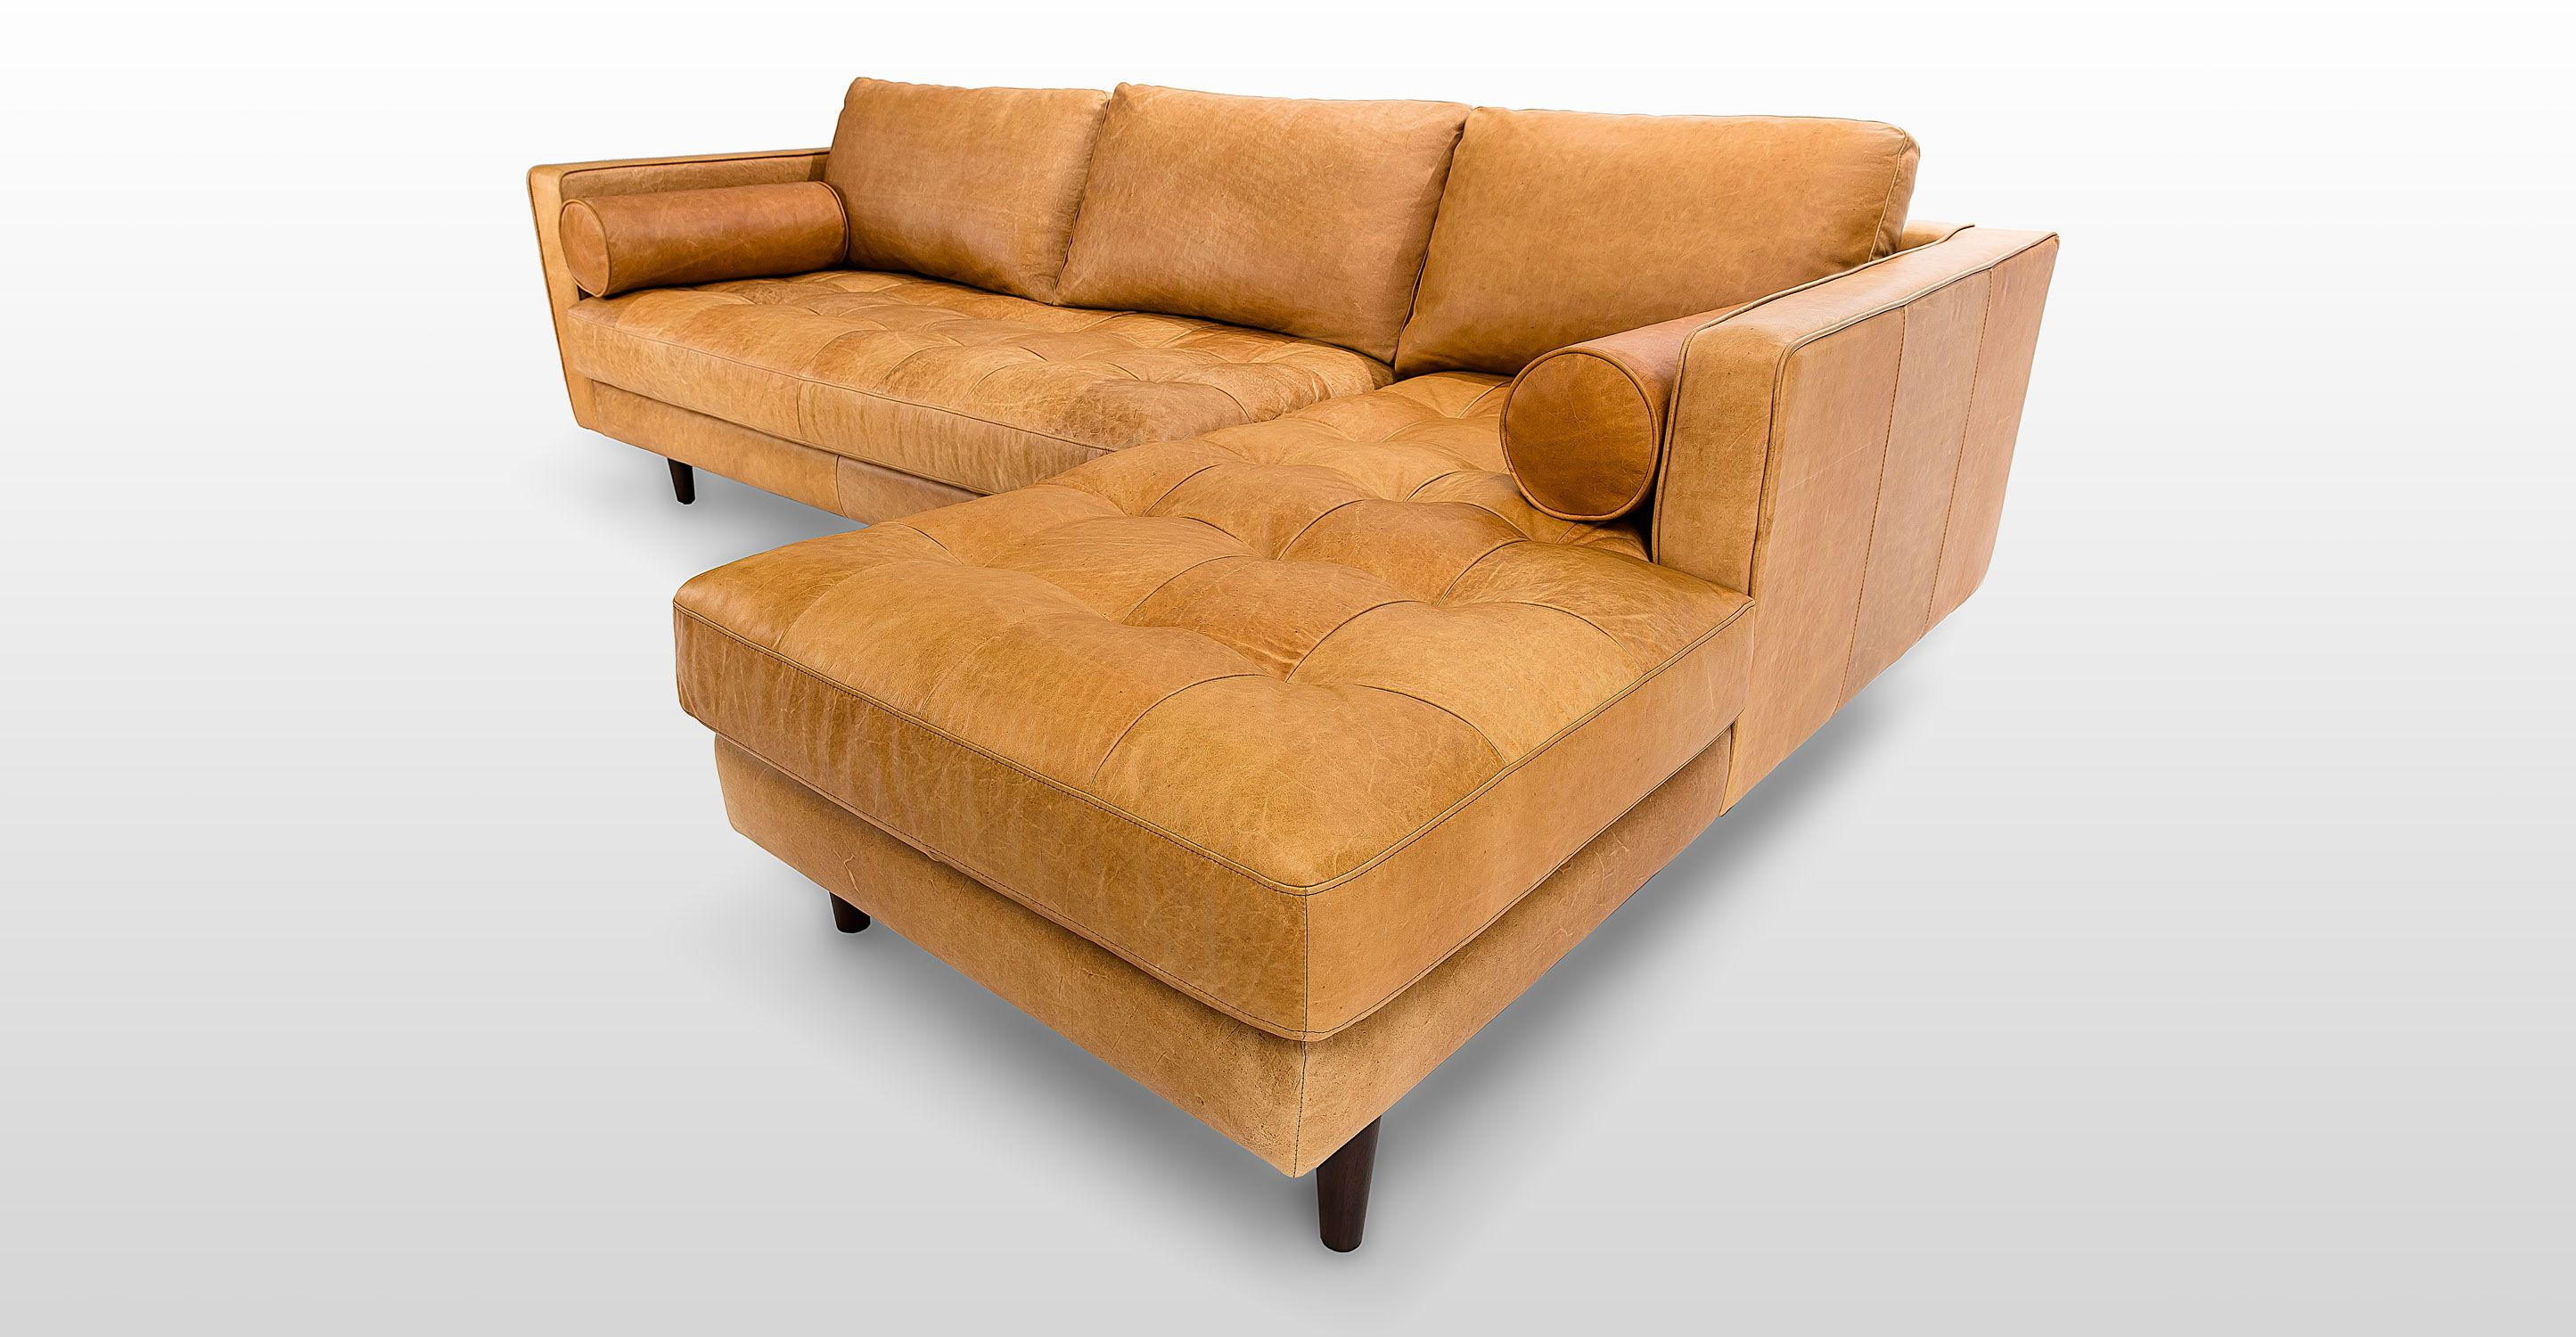 Tan Brown Leather Sectional Upholstered